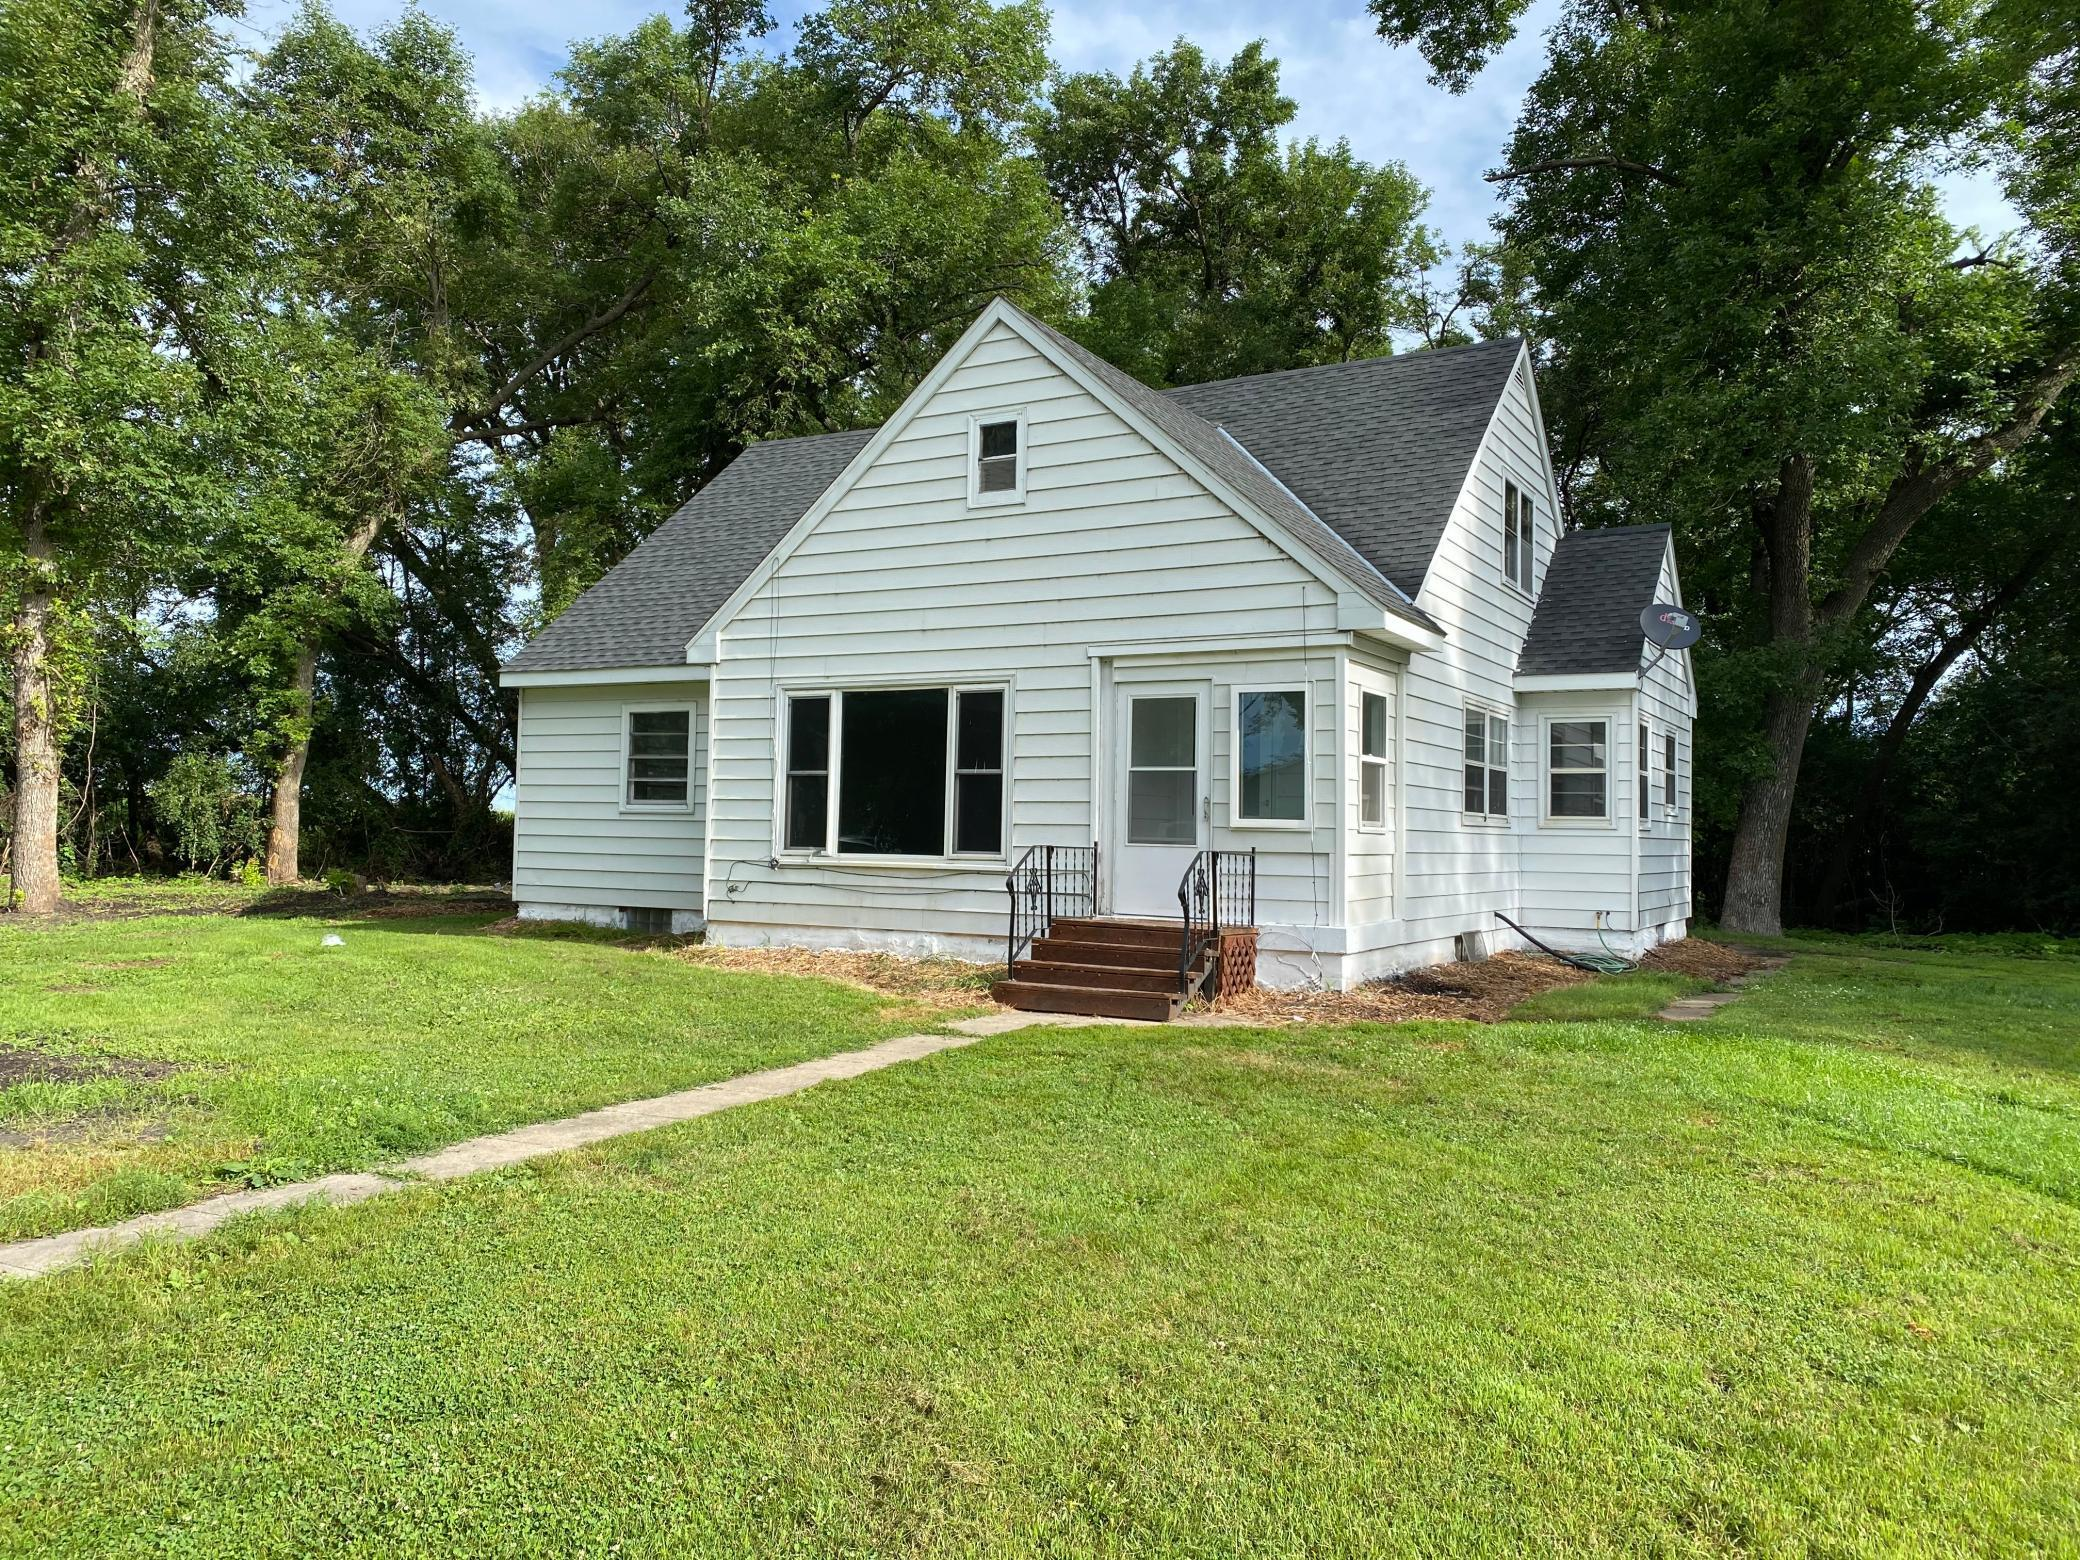 72322 Co Road 3 Property Photo - Fairfax, MN real estate listing